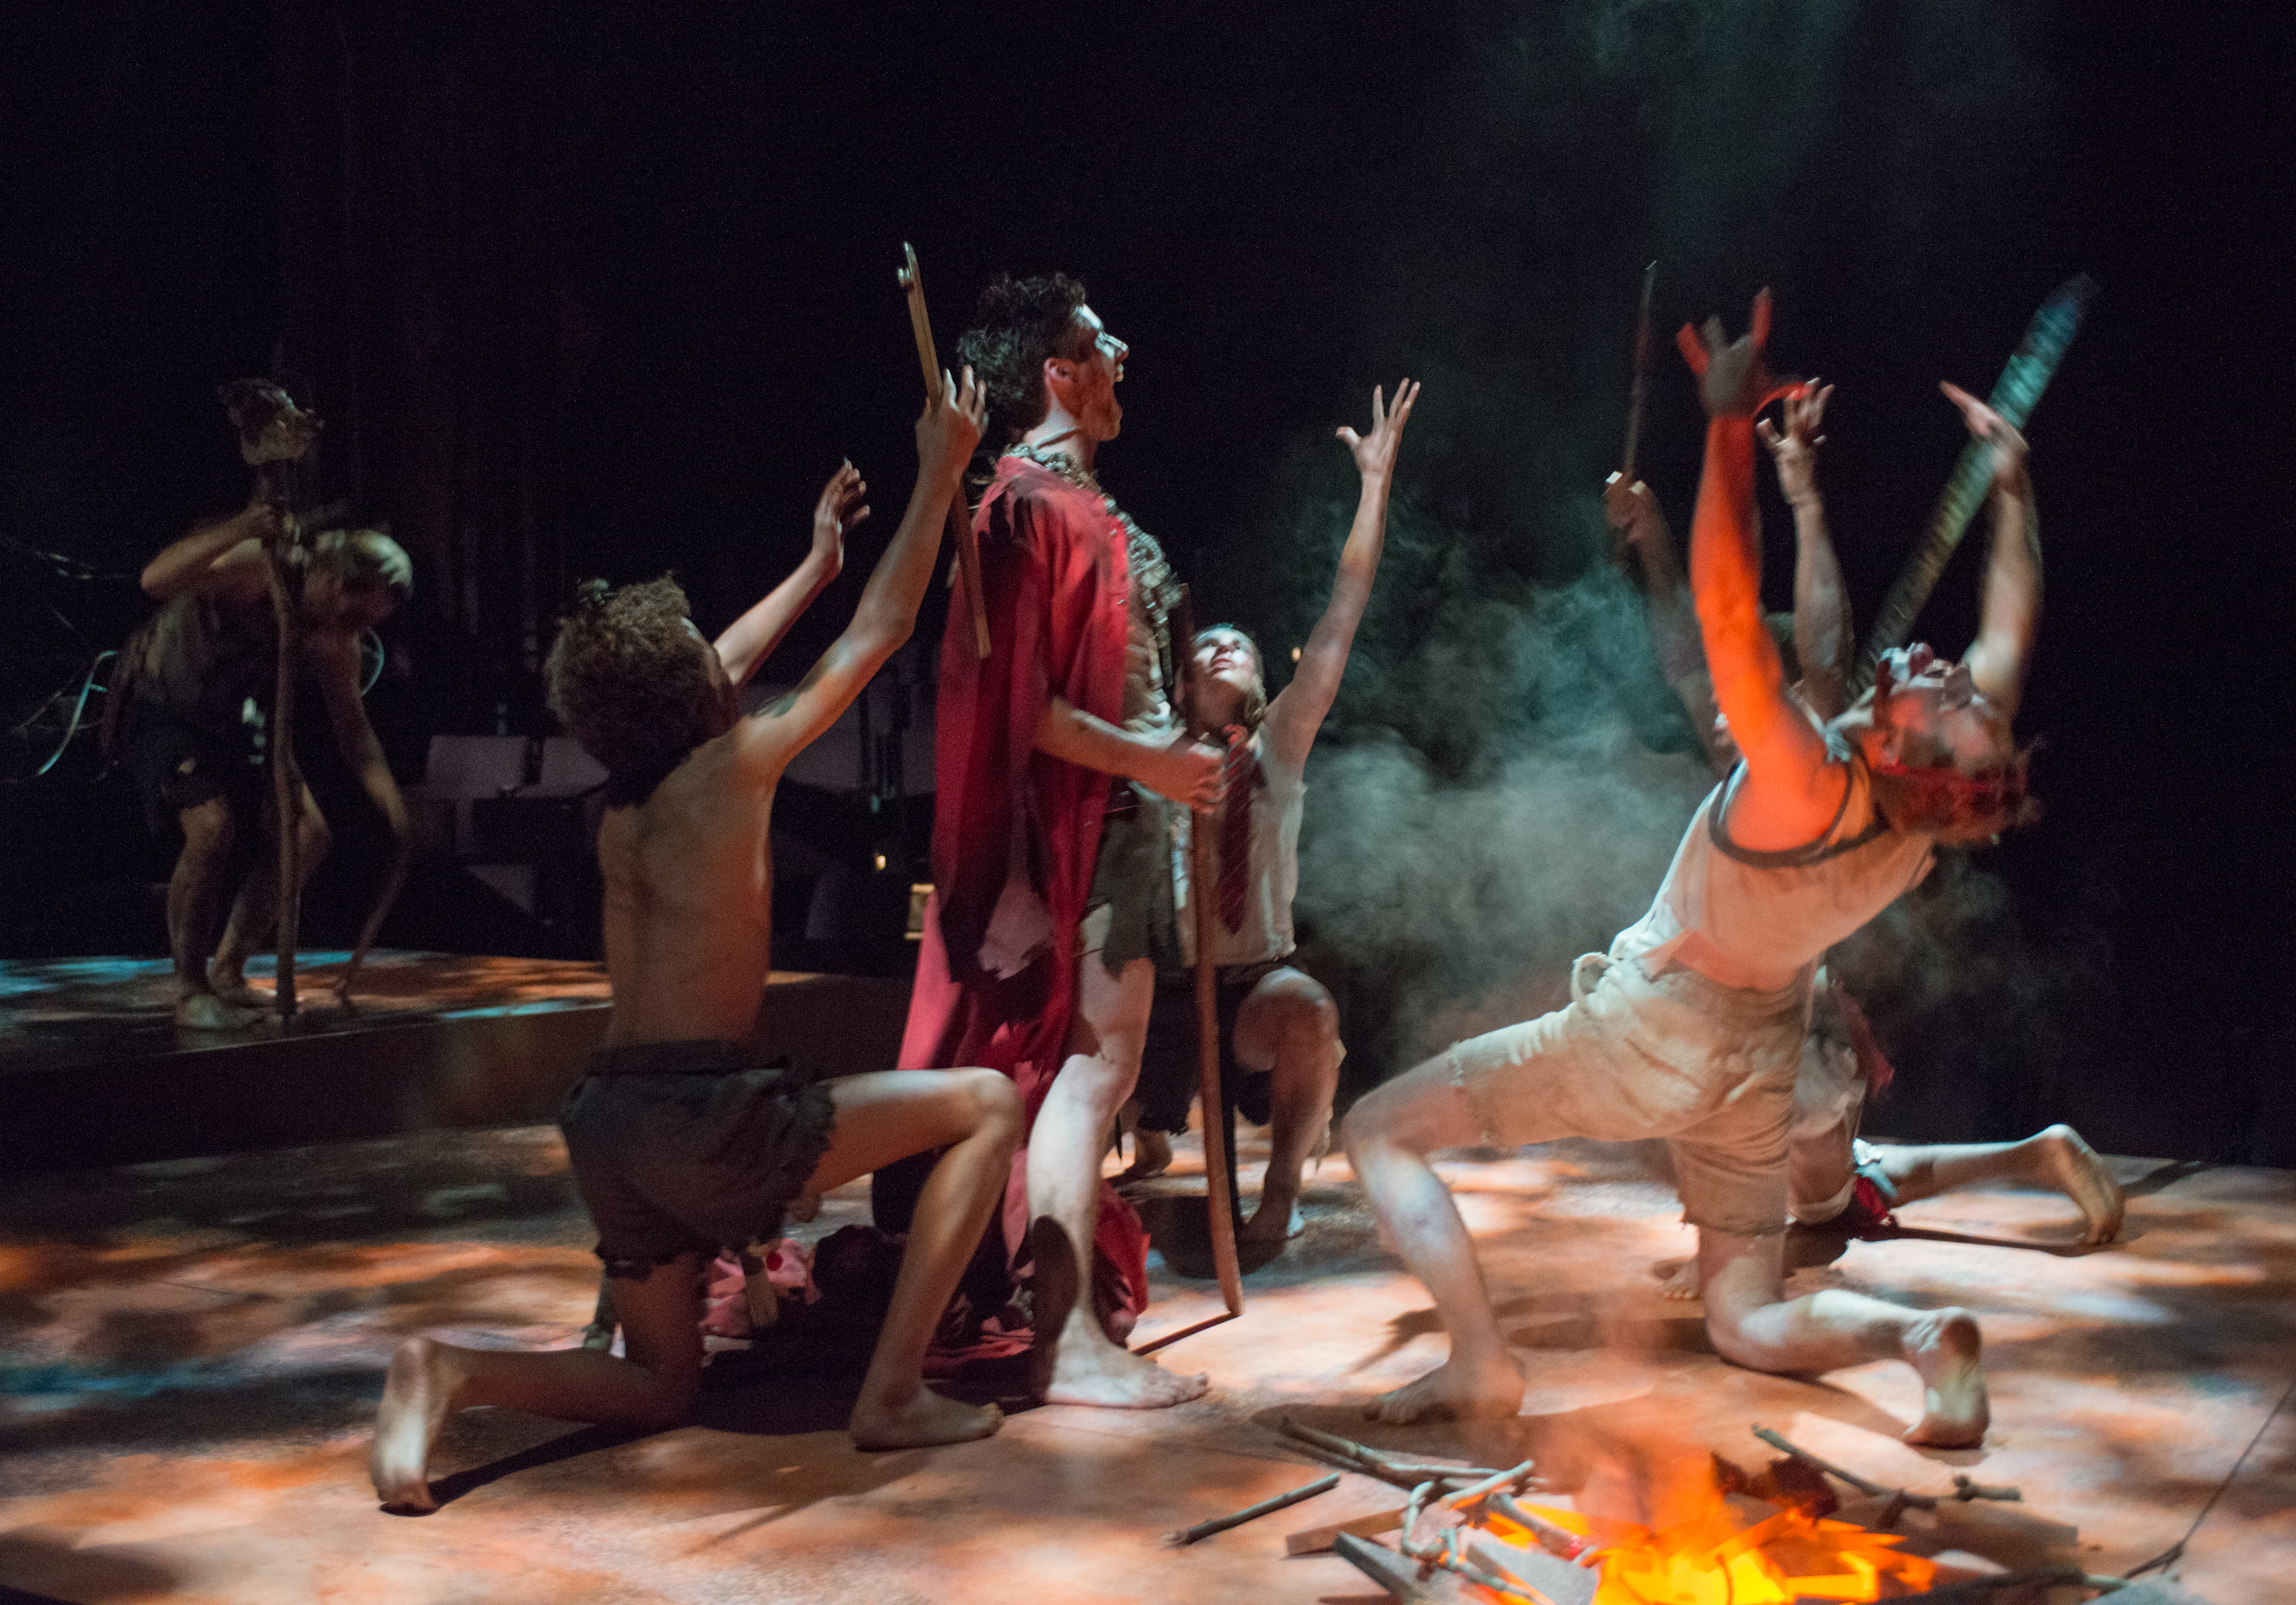 a review of the theater version of lord of the flies Lord of the flies [william golding, e —the new york times book review read more reading lord of the flies as a version of genesis does make the story.